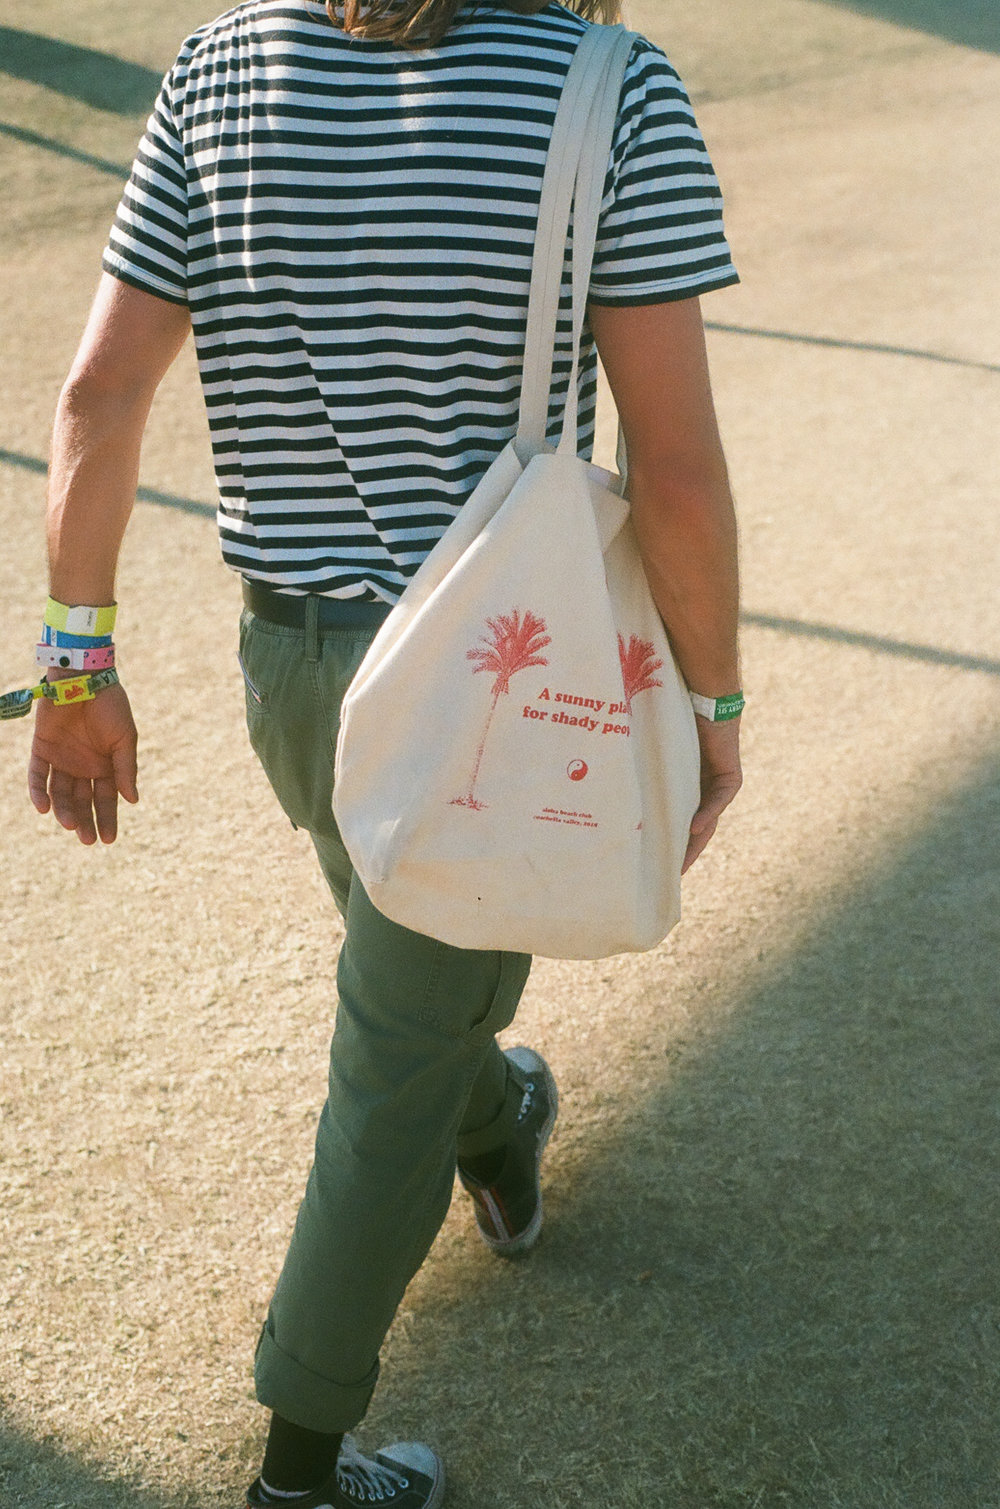 PLNT_MAG_COACHELLA_PHOTOS_21.JPG